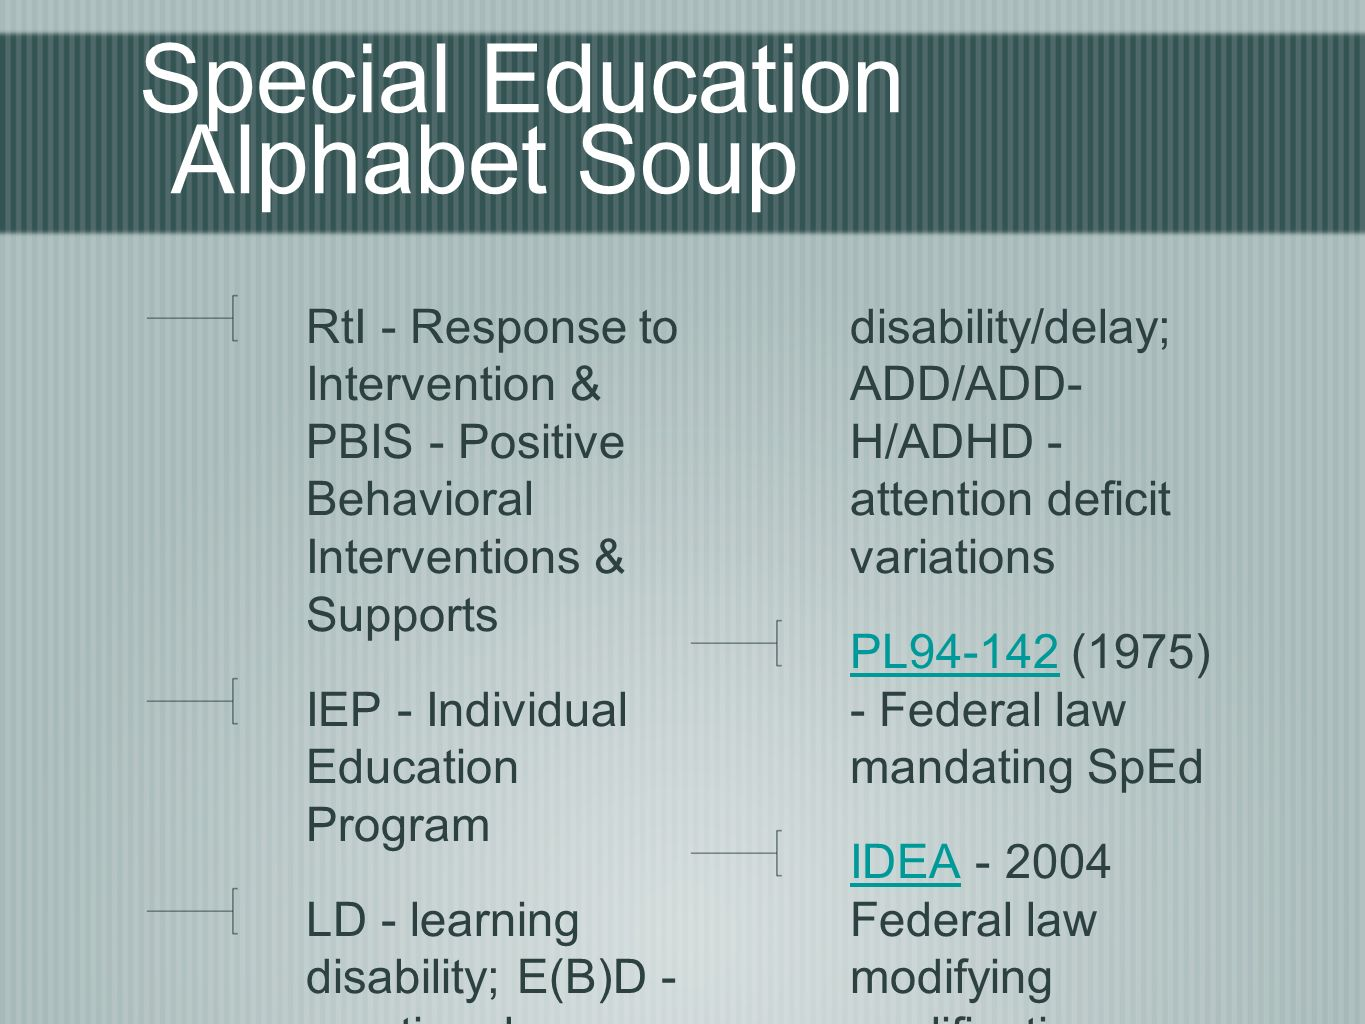 Special Education Alphabet Soup RtI - Response to Intervention & PBIS - Positive Behavioral Interventions & Supports IEP - Individual Education Program LD - learning disability; E(B)D - emotional (behavioral) disability; CD - cognitive disability/delay; ADD/ADD- H/ADHD - attention deficit variations PL94-142PL (1975) - Federal law mandating SpEd IDEAIDEA Federal law modifying qualification See also handout on acronyms